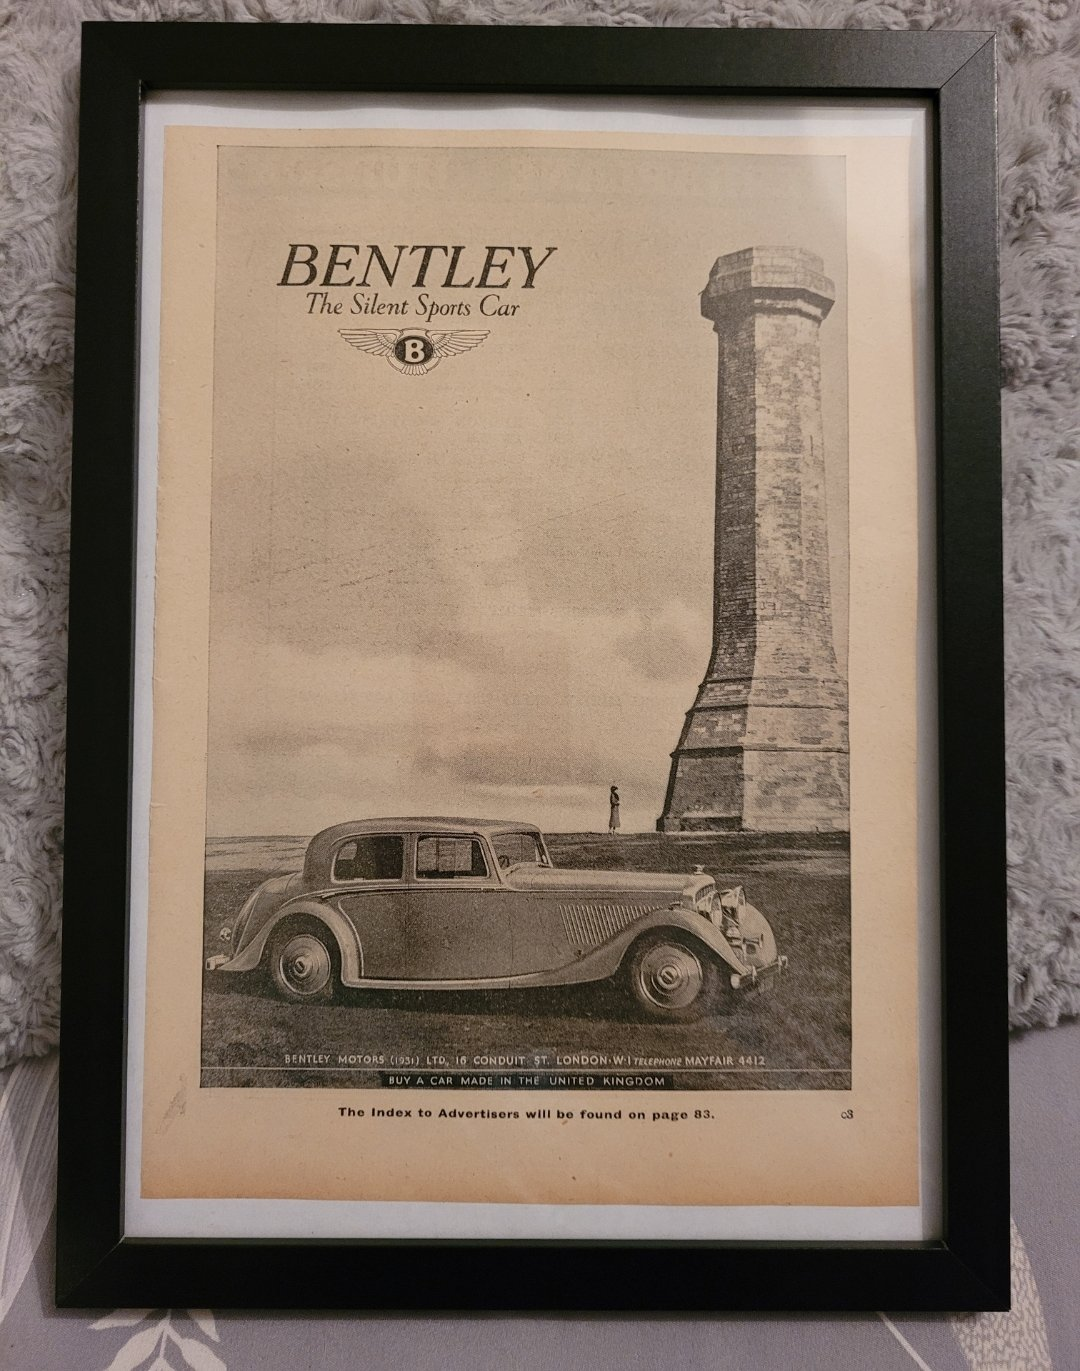 Picture of 1988 Original 1936 Bentley 4 1/4 Ltr Framed Advert